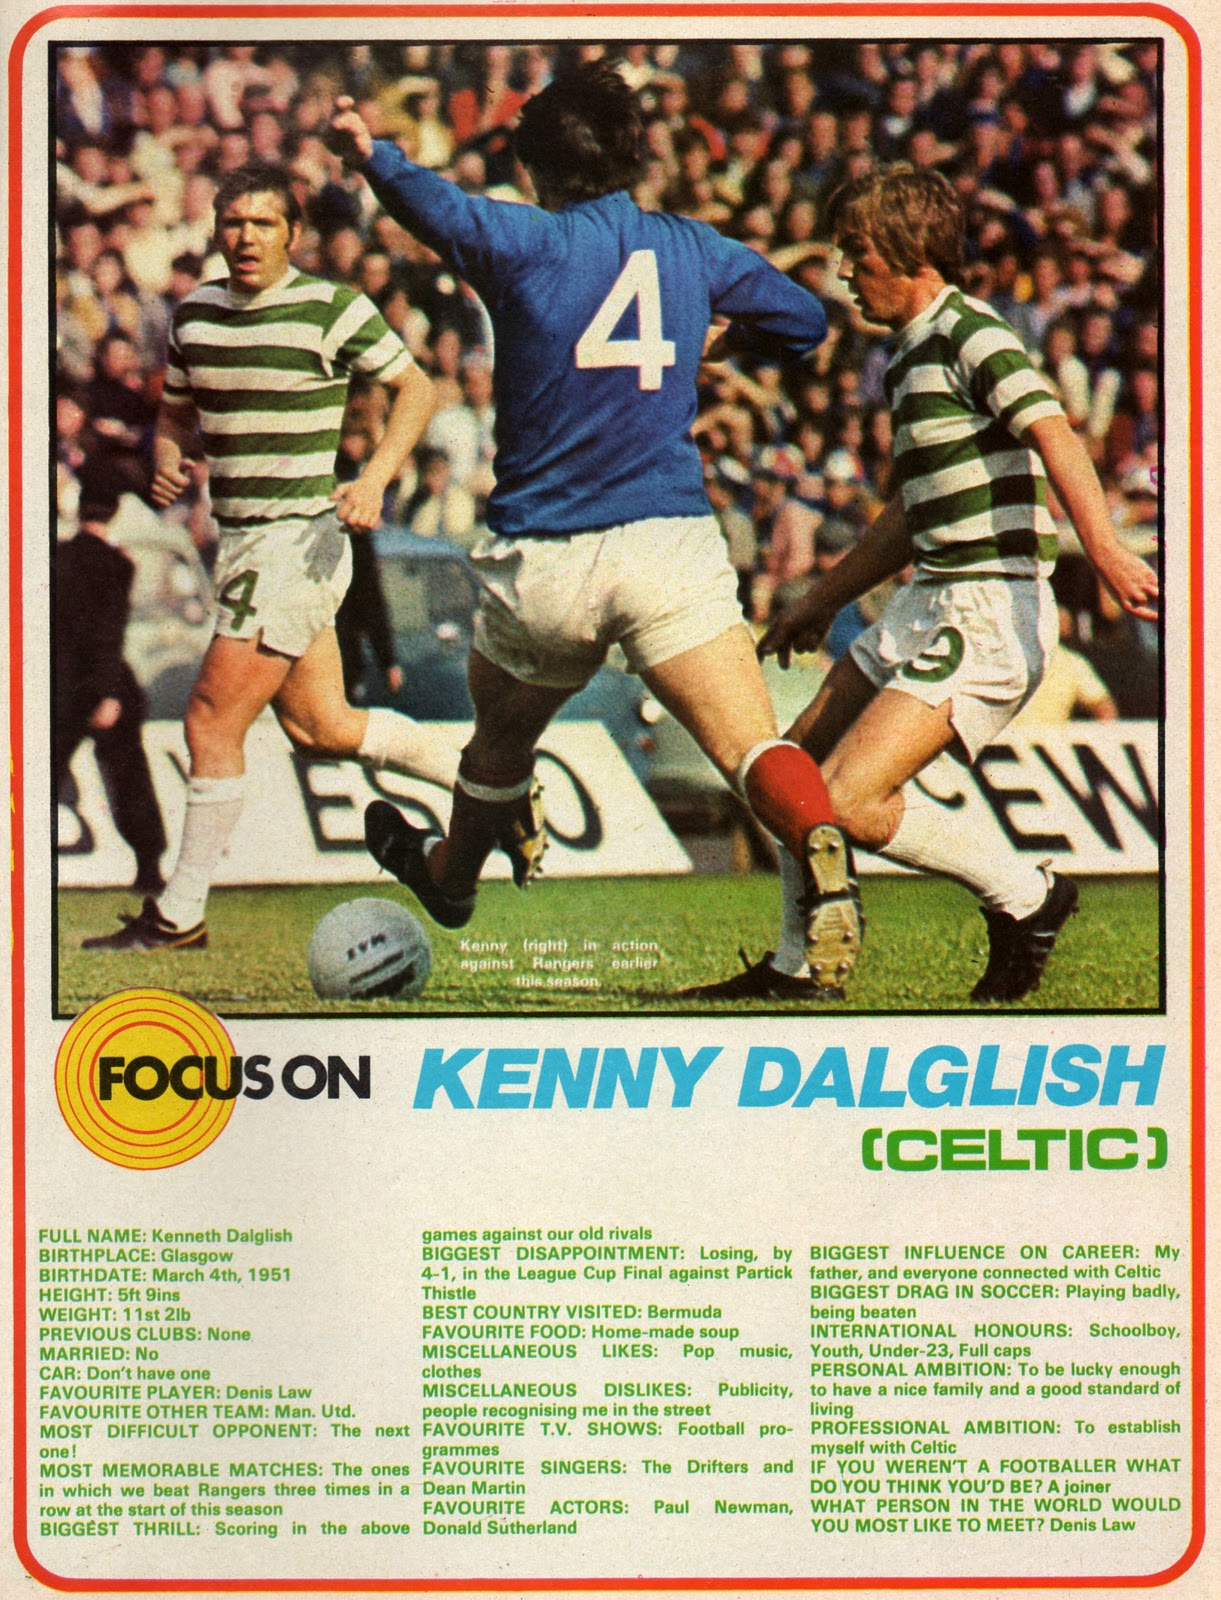 Focus on Celtic's star Kenny Dalglish